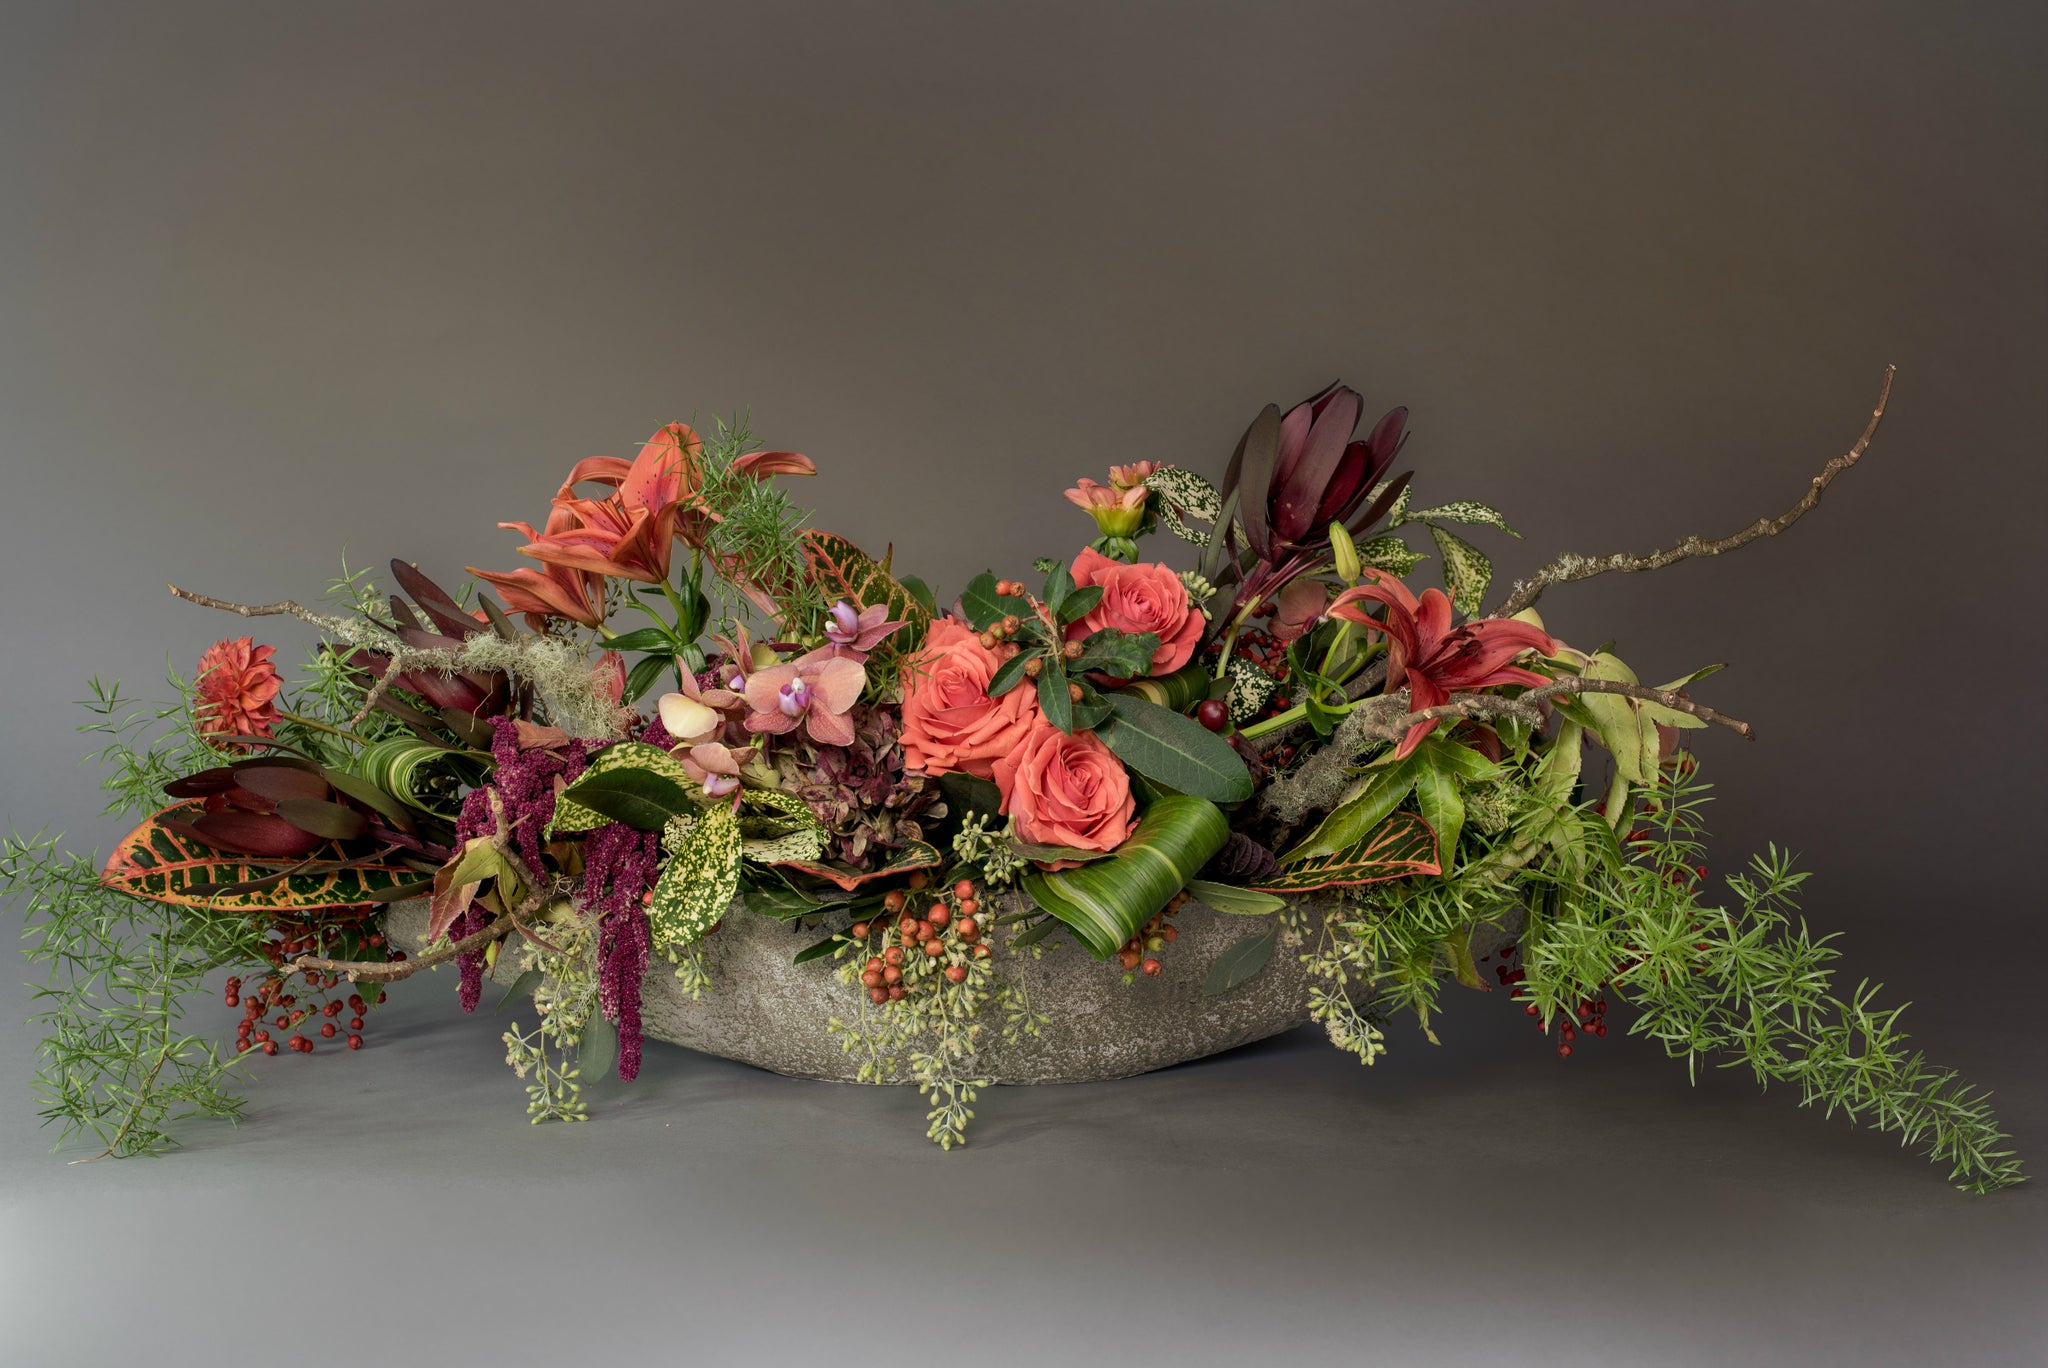 Wild & Eclectic centerpiece mix in a stone container